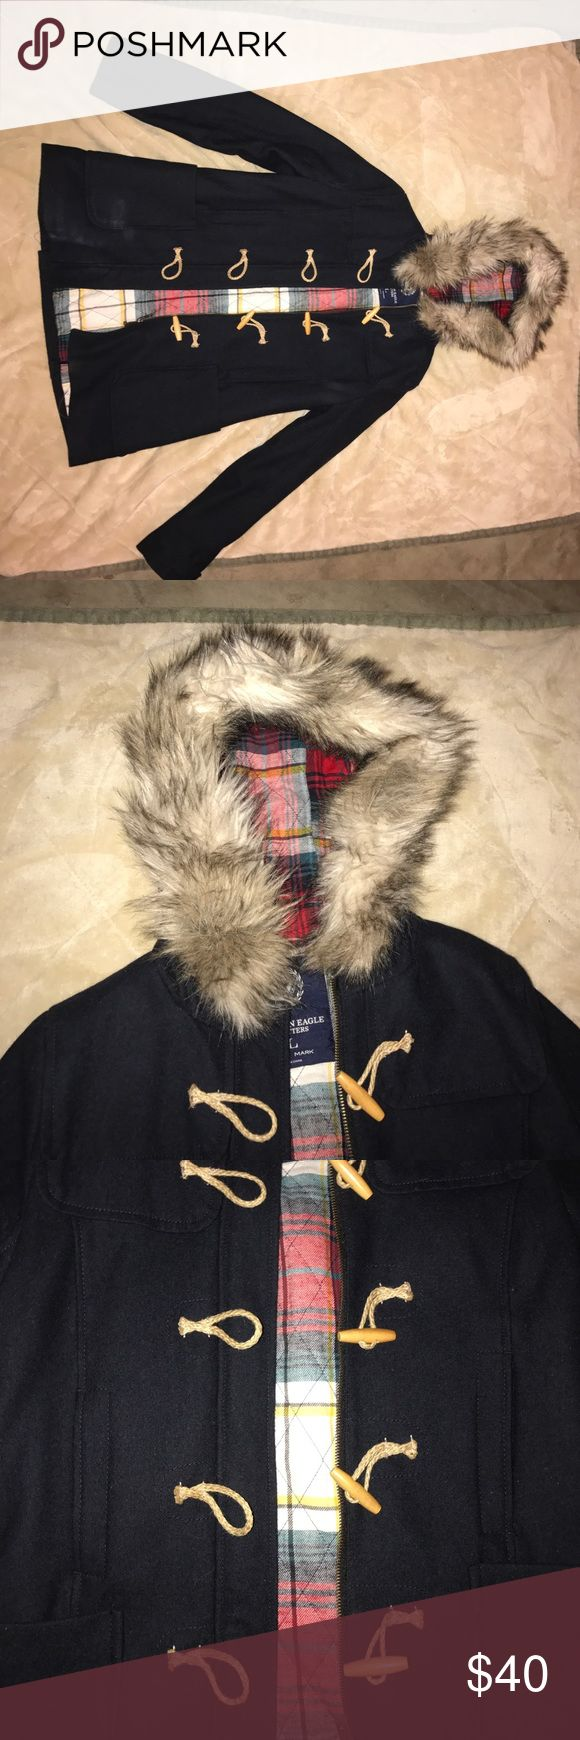 American Eagle Jacket Adorable, navy blue and plaid, fur hooded jacket. Gently worn. Perfect for every day use! American Eagle Outfitters Jackets & Coats